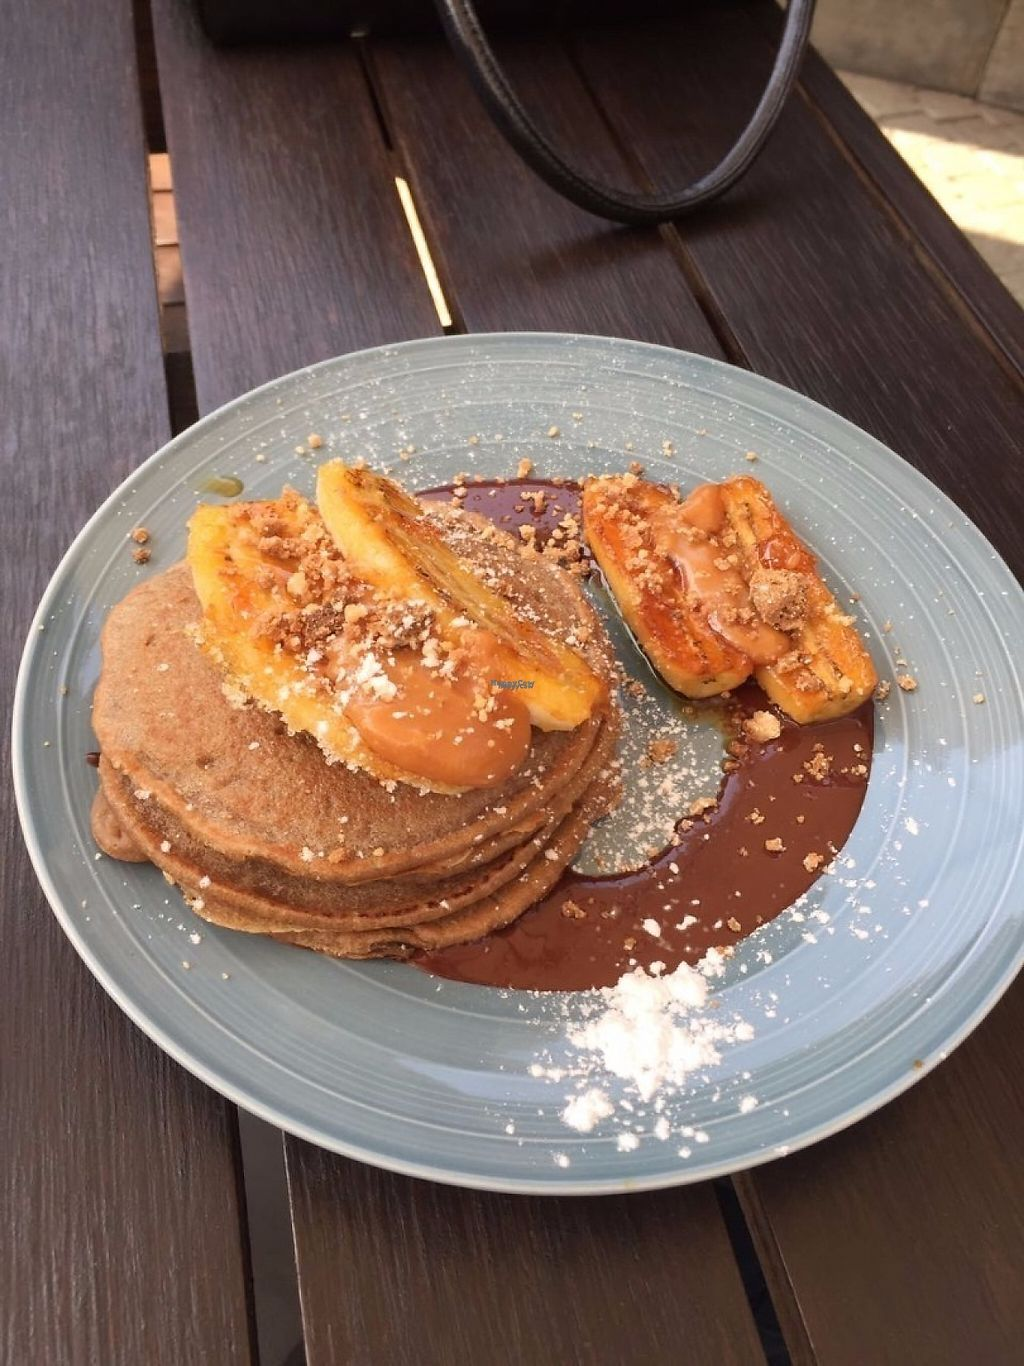 """Photo of Cafe Kumbuk Good Market  by <a href=""""/members/profile/CatDouglas"""">CatDouglas</a> <br/>Burnt caramel pancakes - Vegan <br/> February 28, 2017  - <a href='/contact/abuse/image/86812/231171'>Report</a>"""